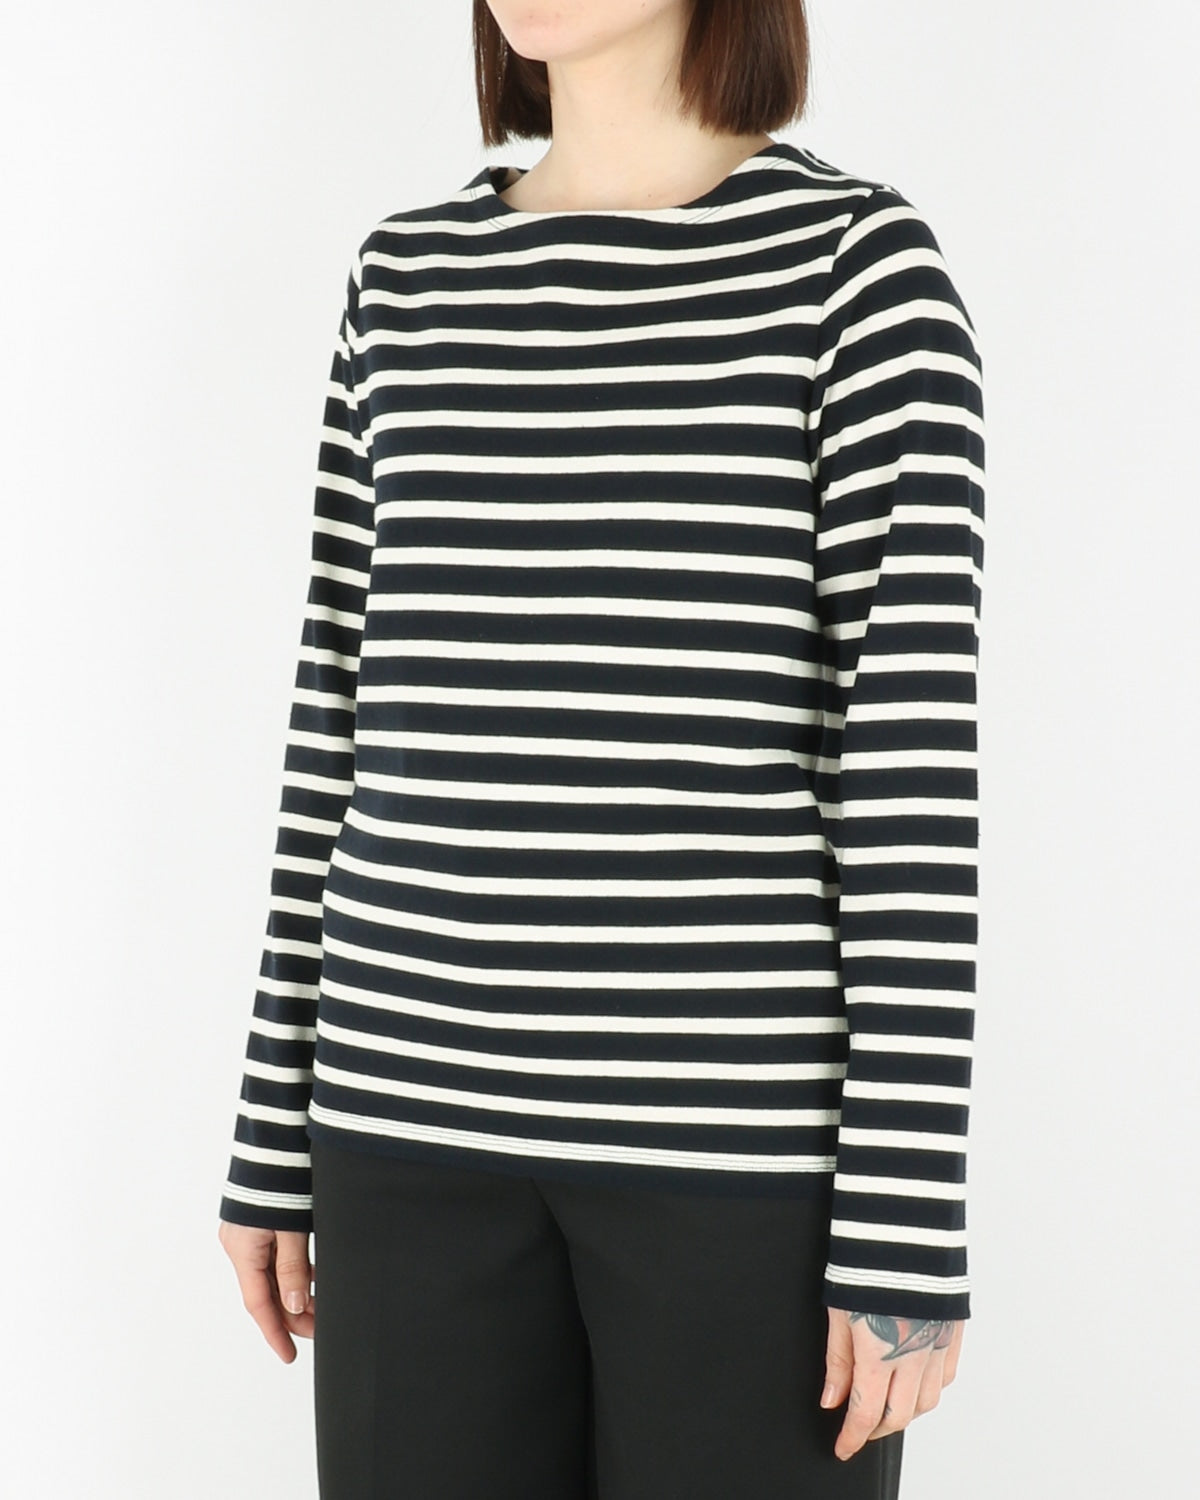 norse projects women_inge classic stripe_dark navy_view_2_2